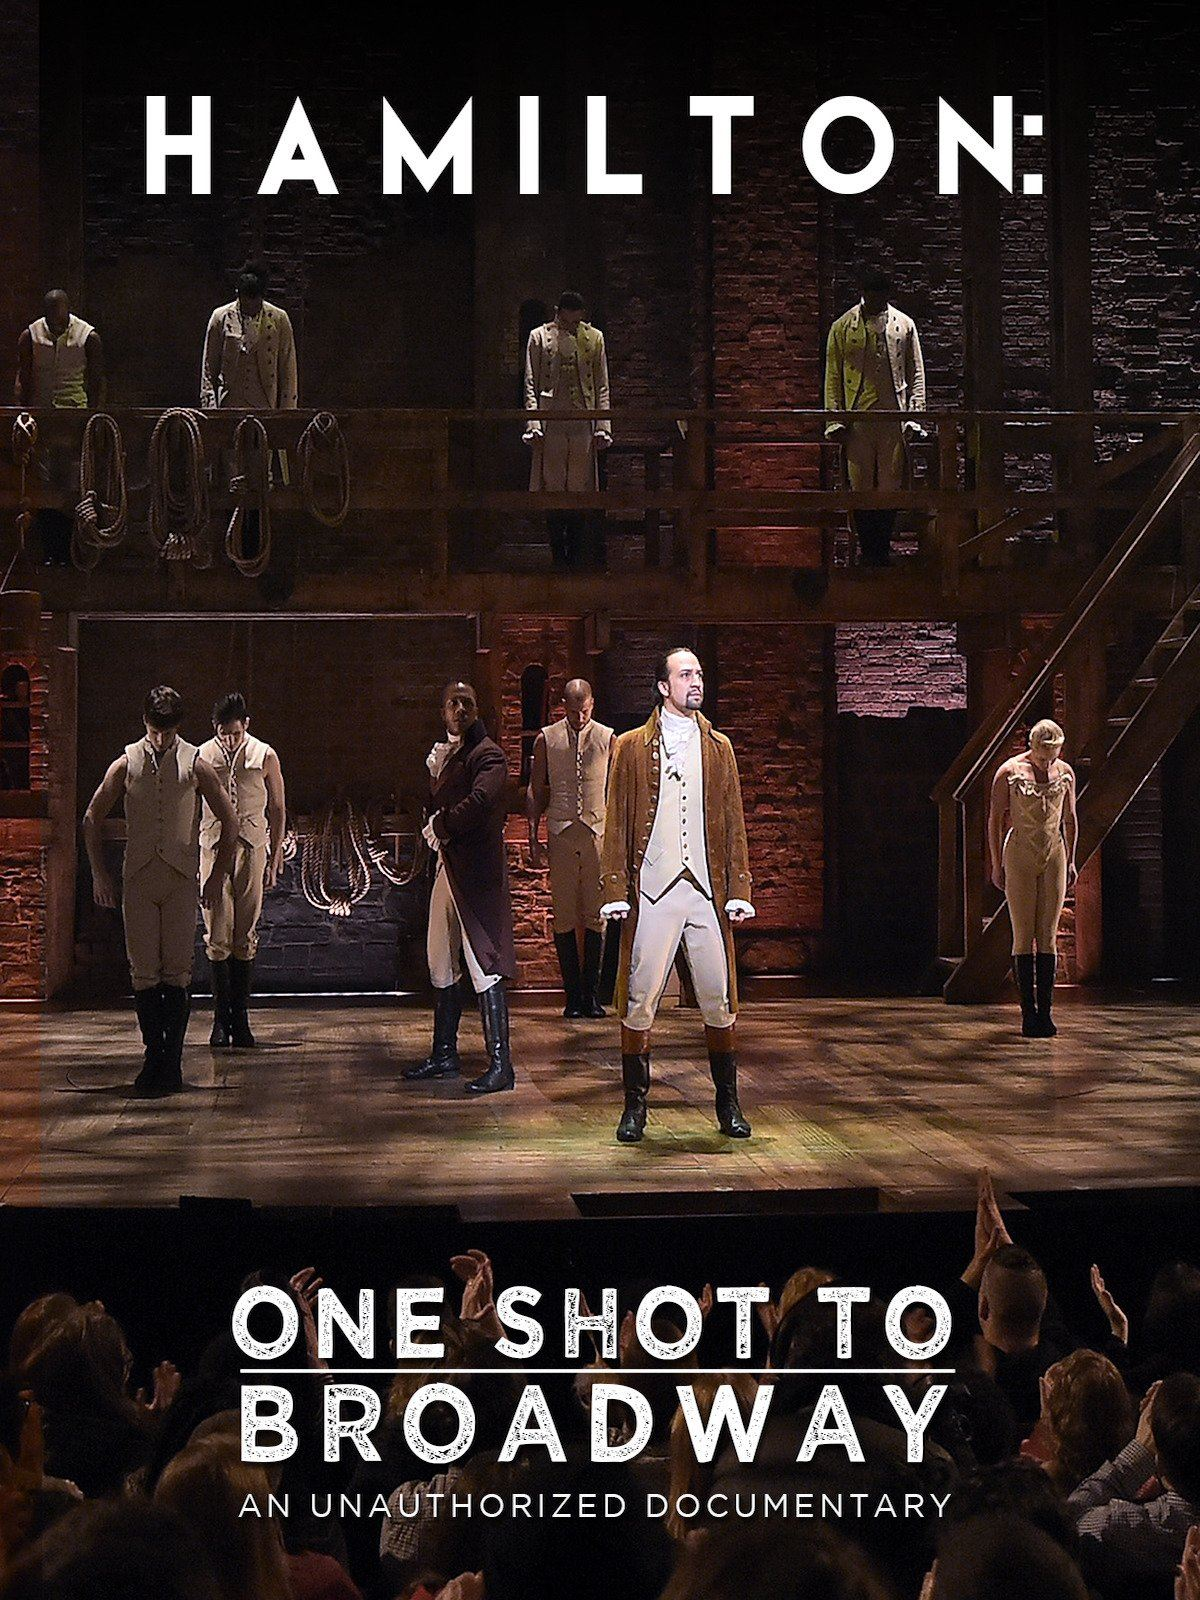 One Shot to Broadway Opens in new window